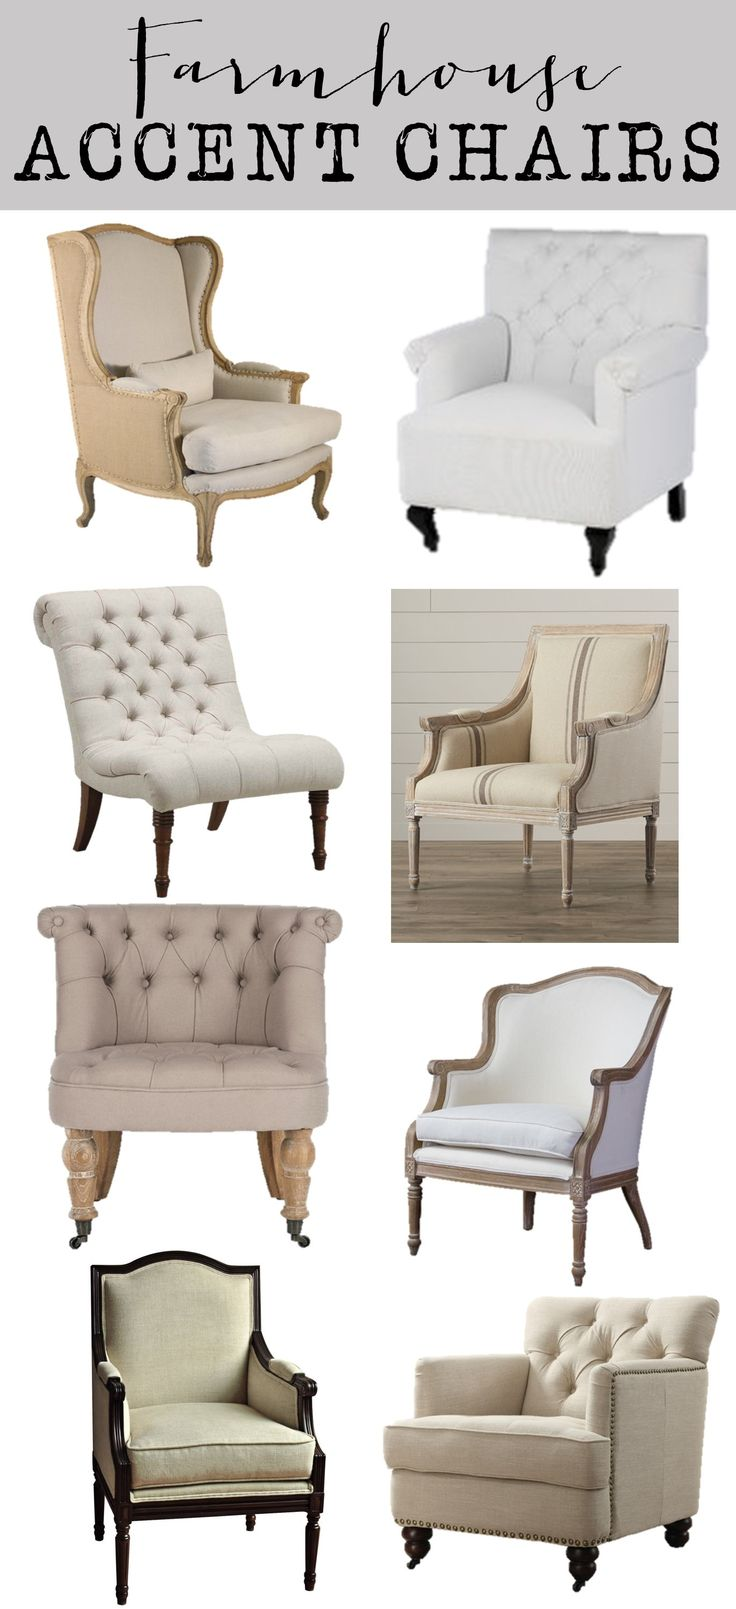 Traditional accent chairs - Friday Favorites Farmhouse Accent Chairs House Of Hargrove Neutral Linen Tufted